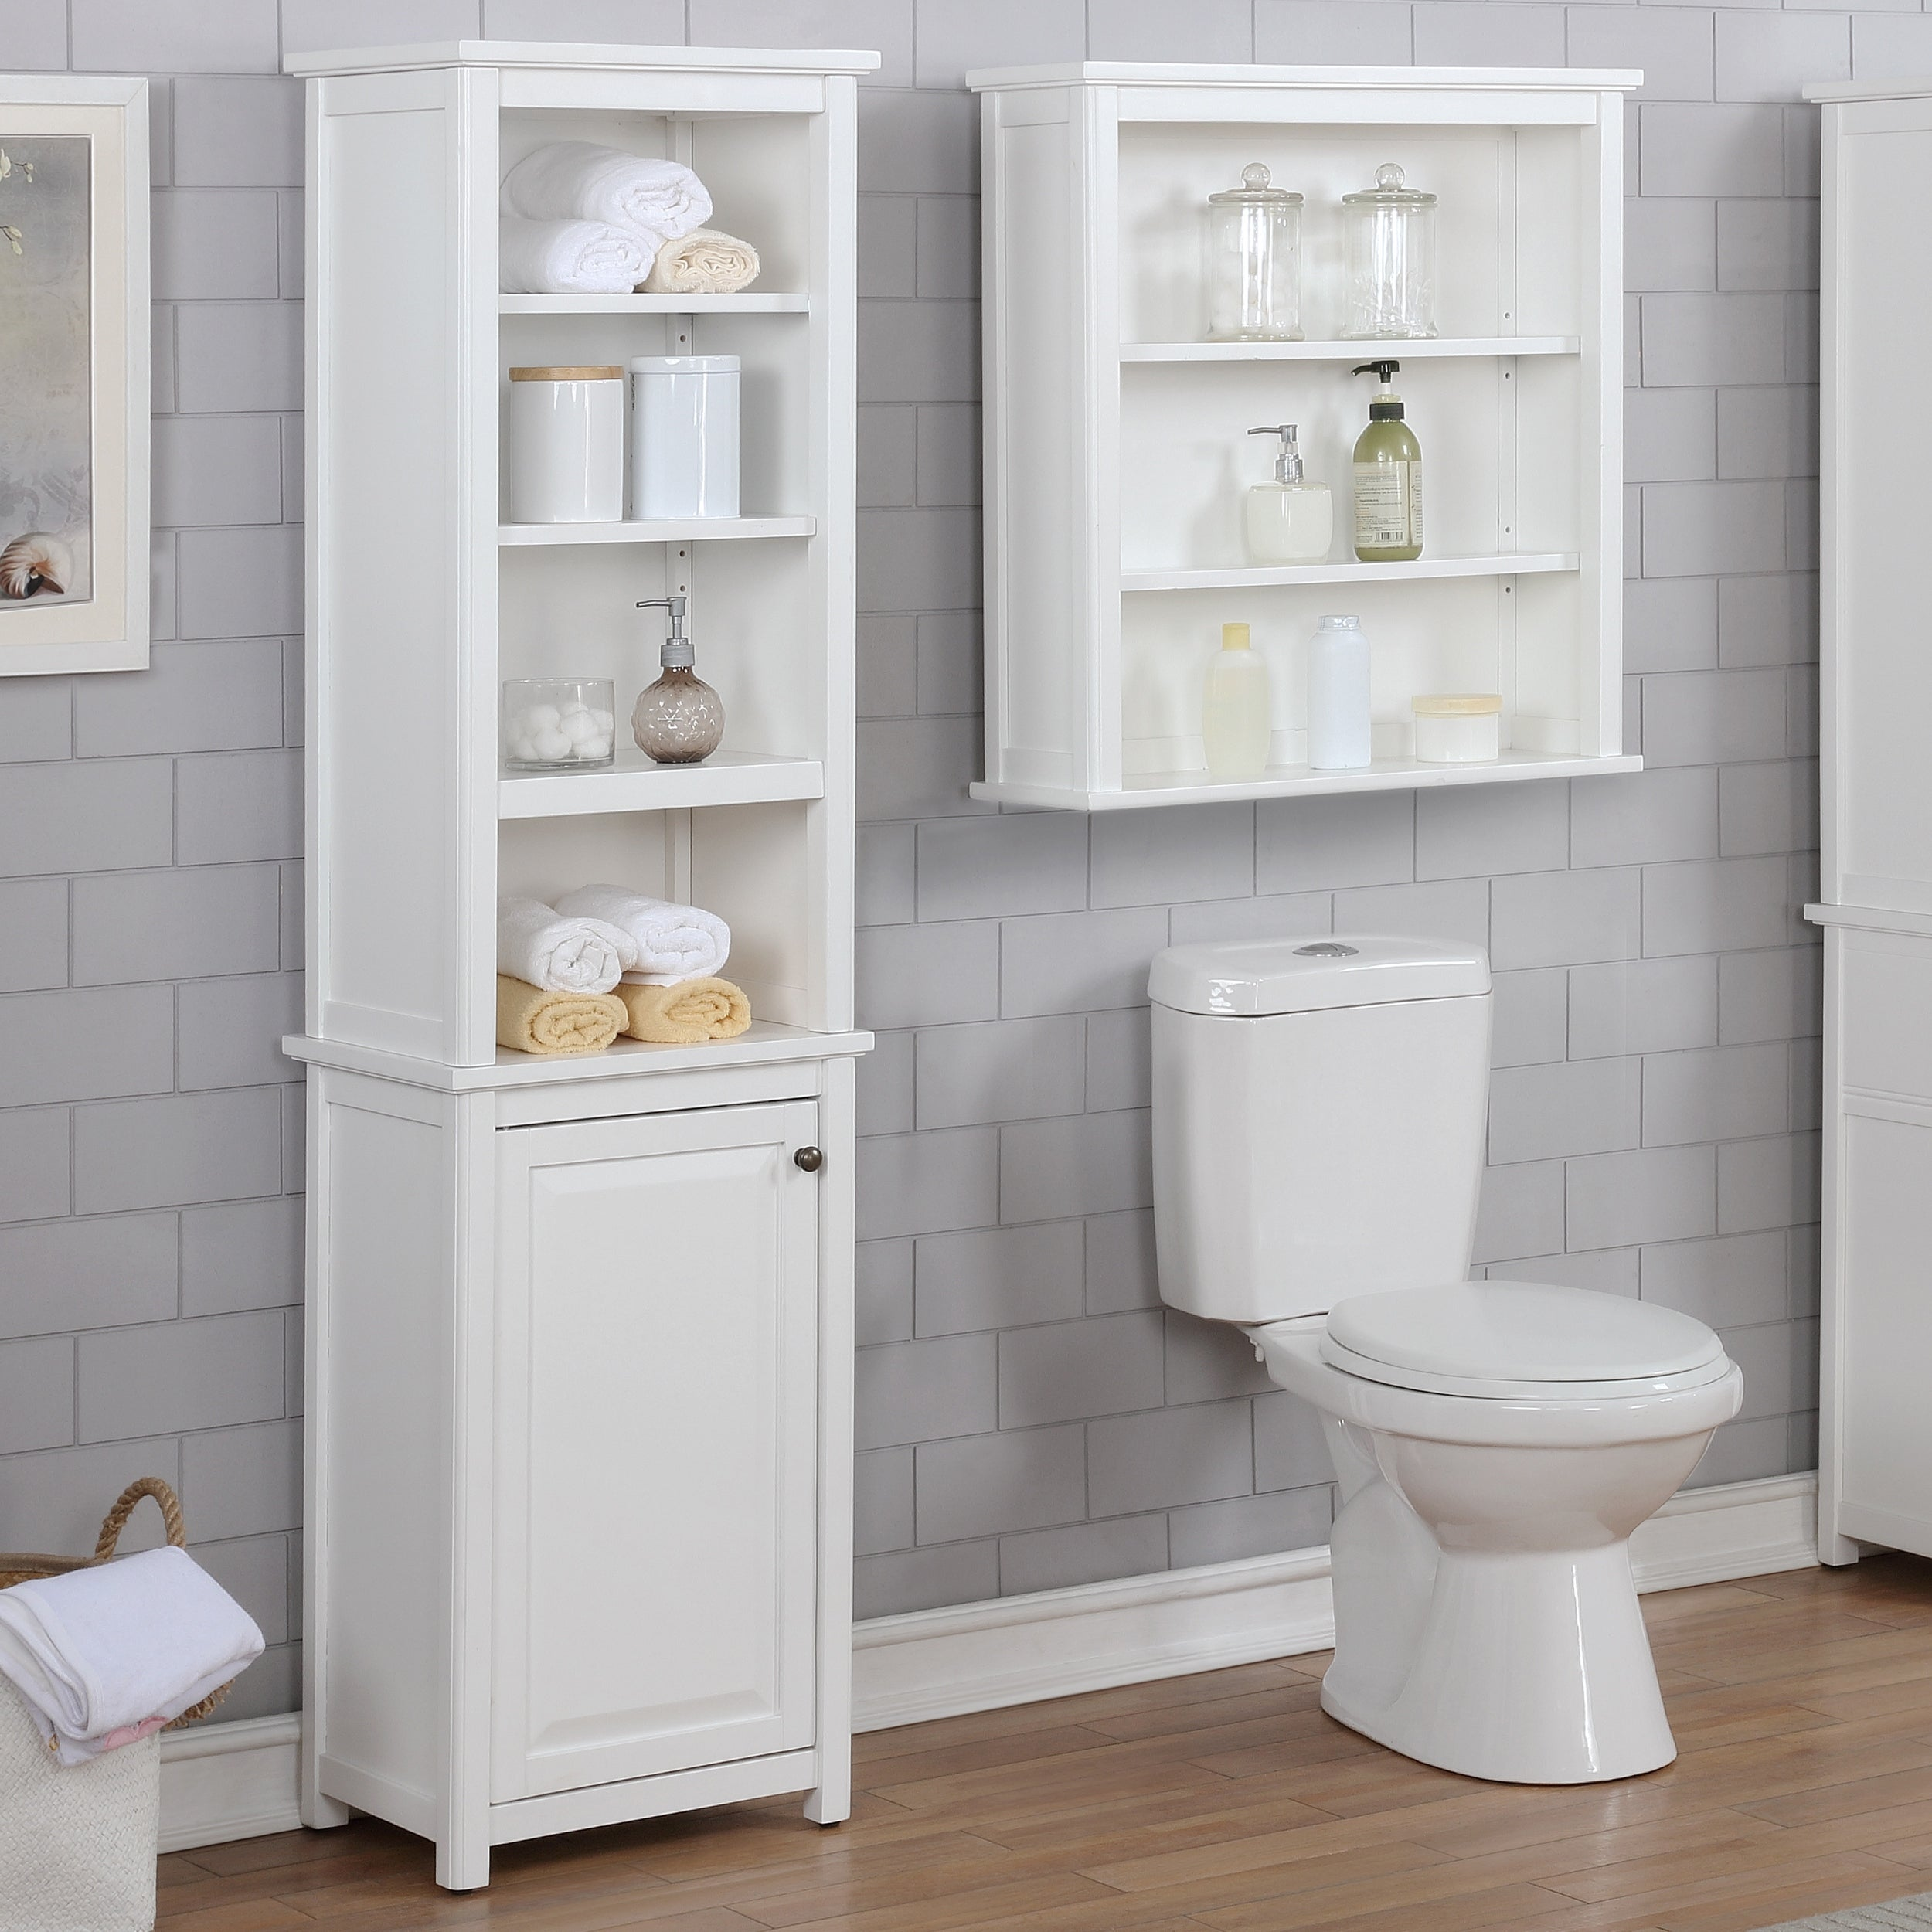 Porch Den Everest Bathroom Storage Tower With Open Upper Shelves And Lower Cabinet Overstock 26050437